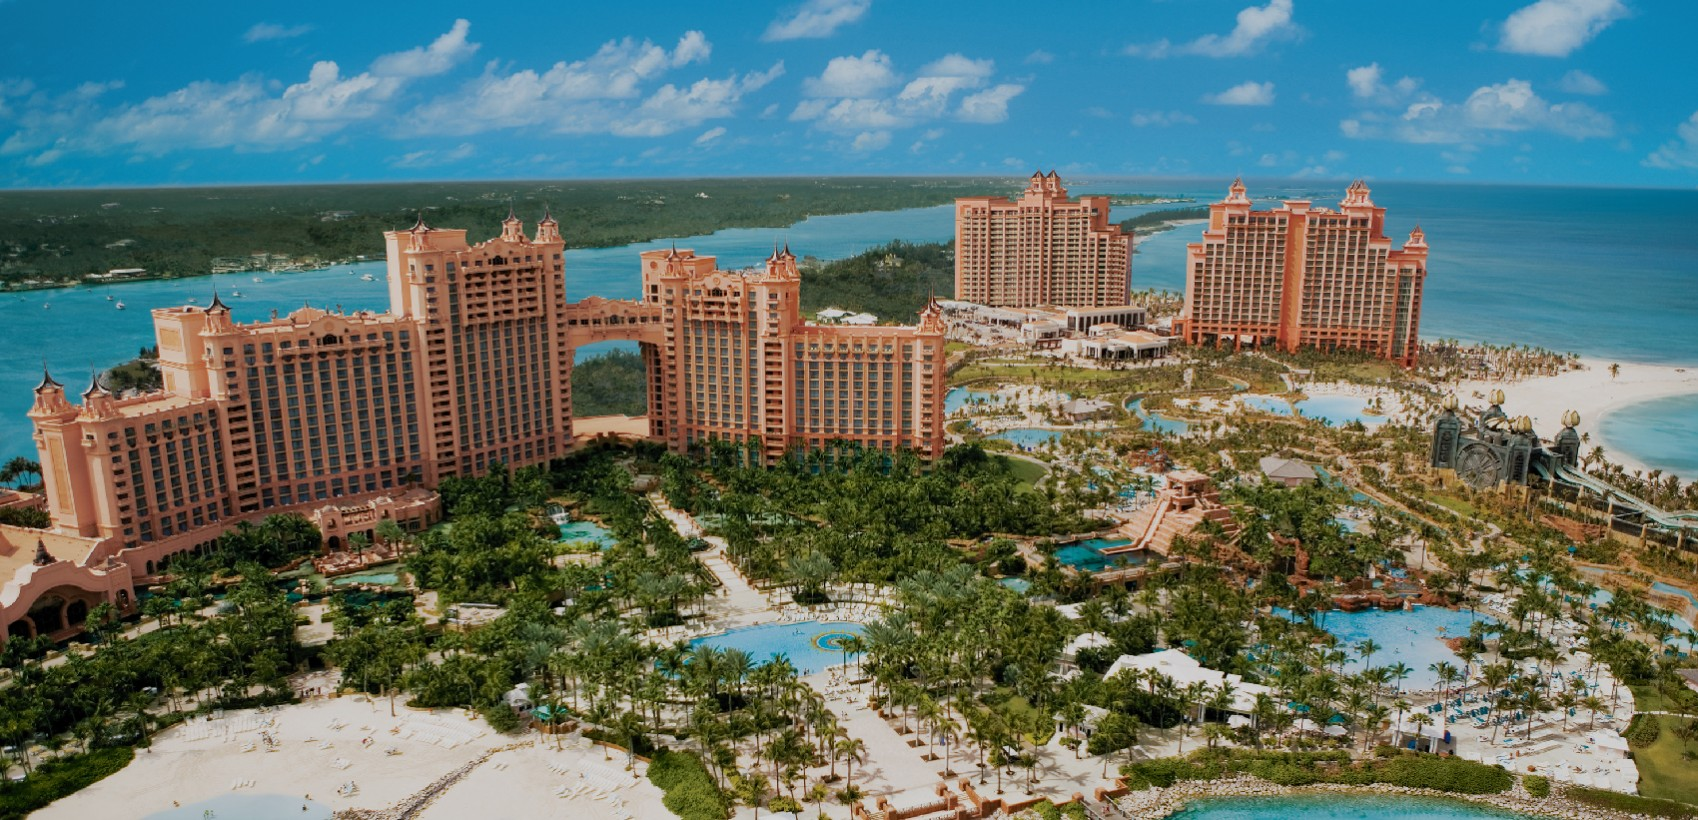 Save on Atlantis in the Bahamas with WestJet Vacations